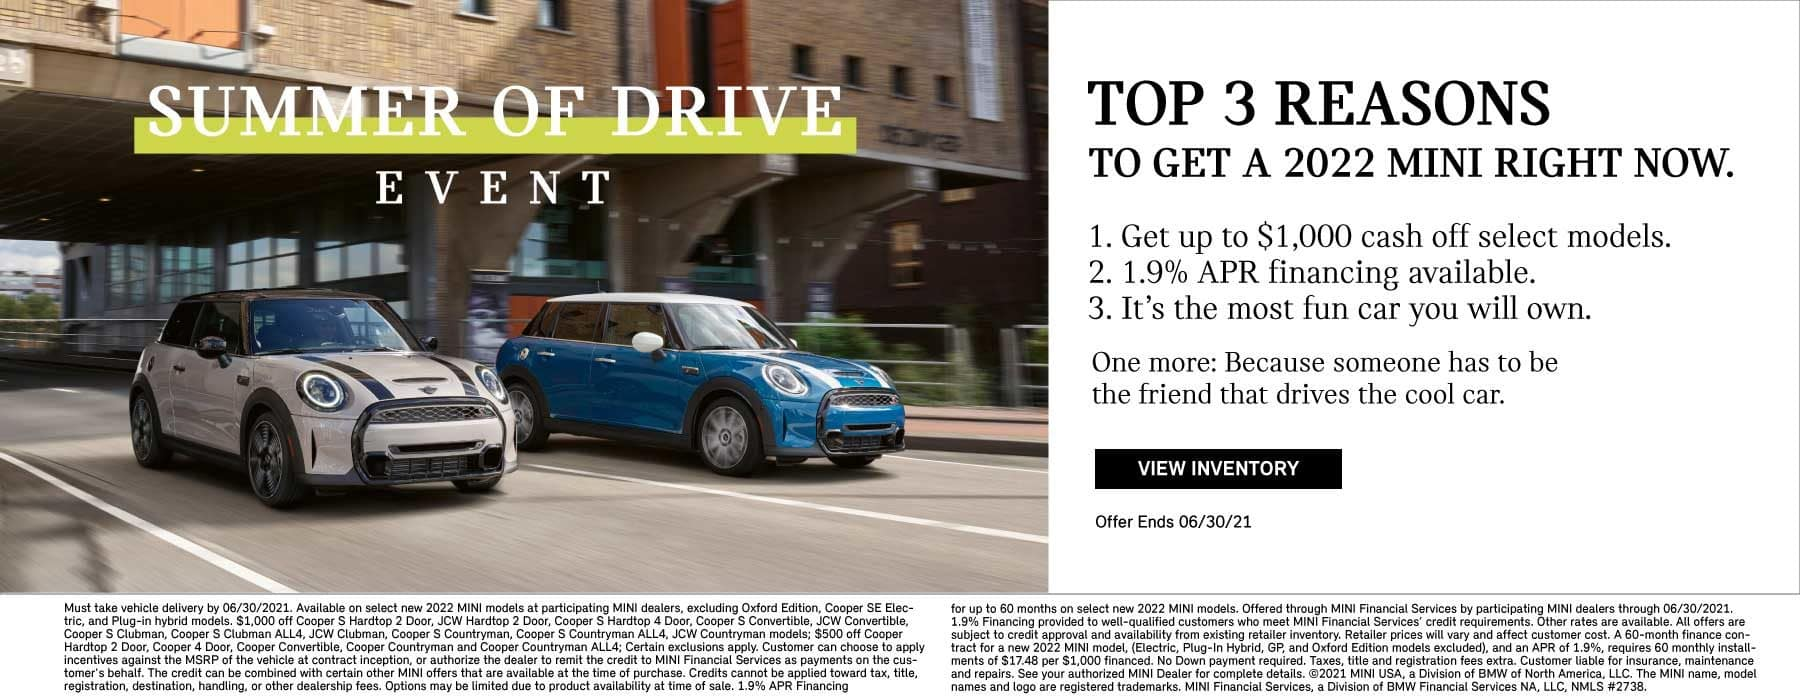 Top 3 Reasons to Get a 2022 MINI Right Now- 1. Get up to $1,000 cash off select models 2. 1.9% APR financing available 3.Its the most fun car you will own. One more- Becuase someone has to be the friend that drives the cool car.